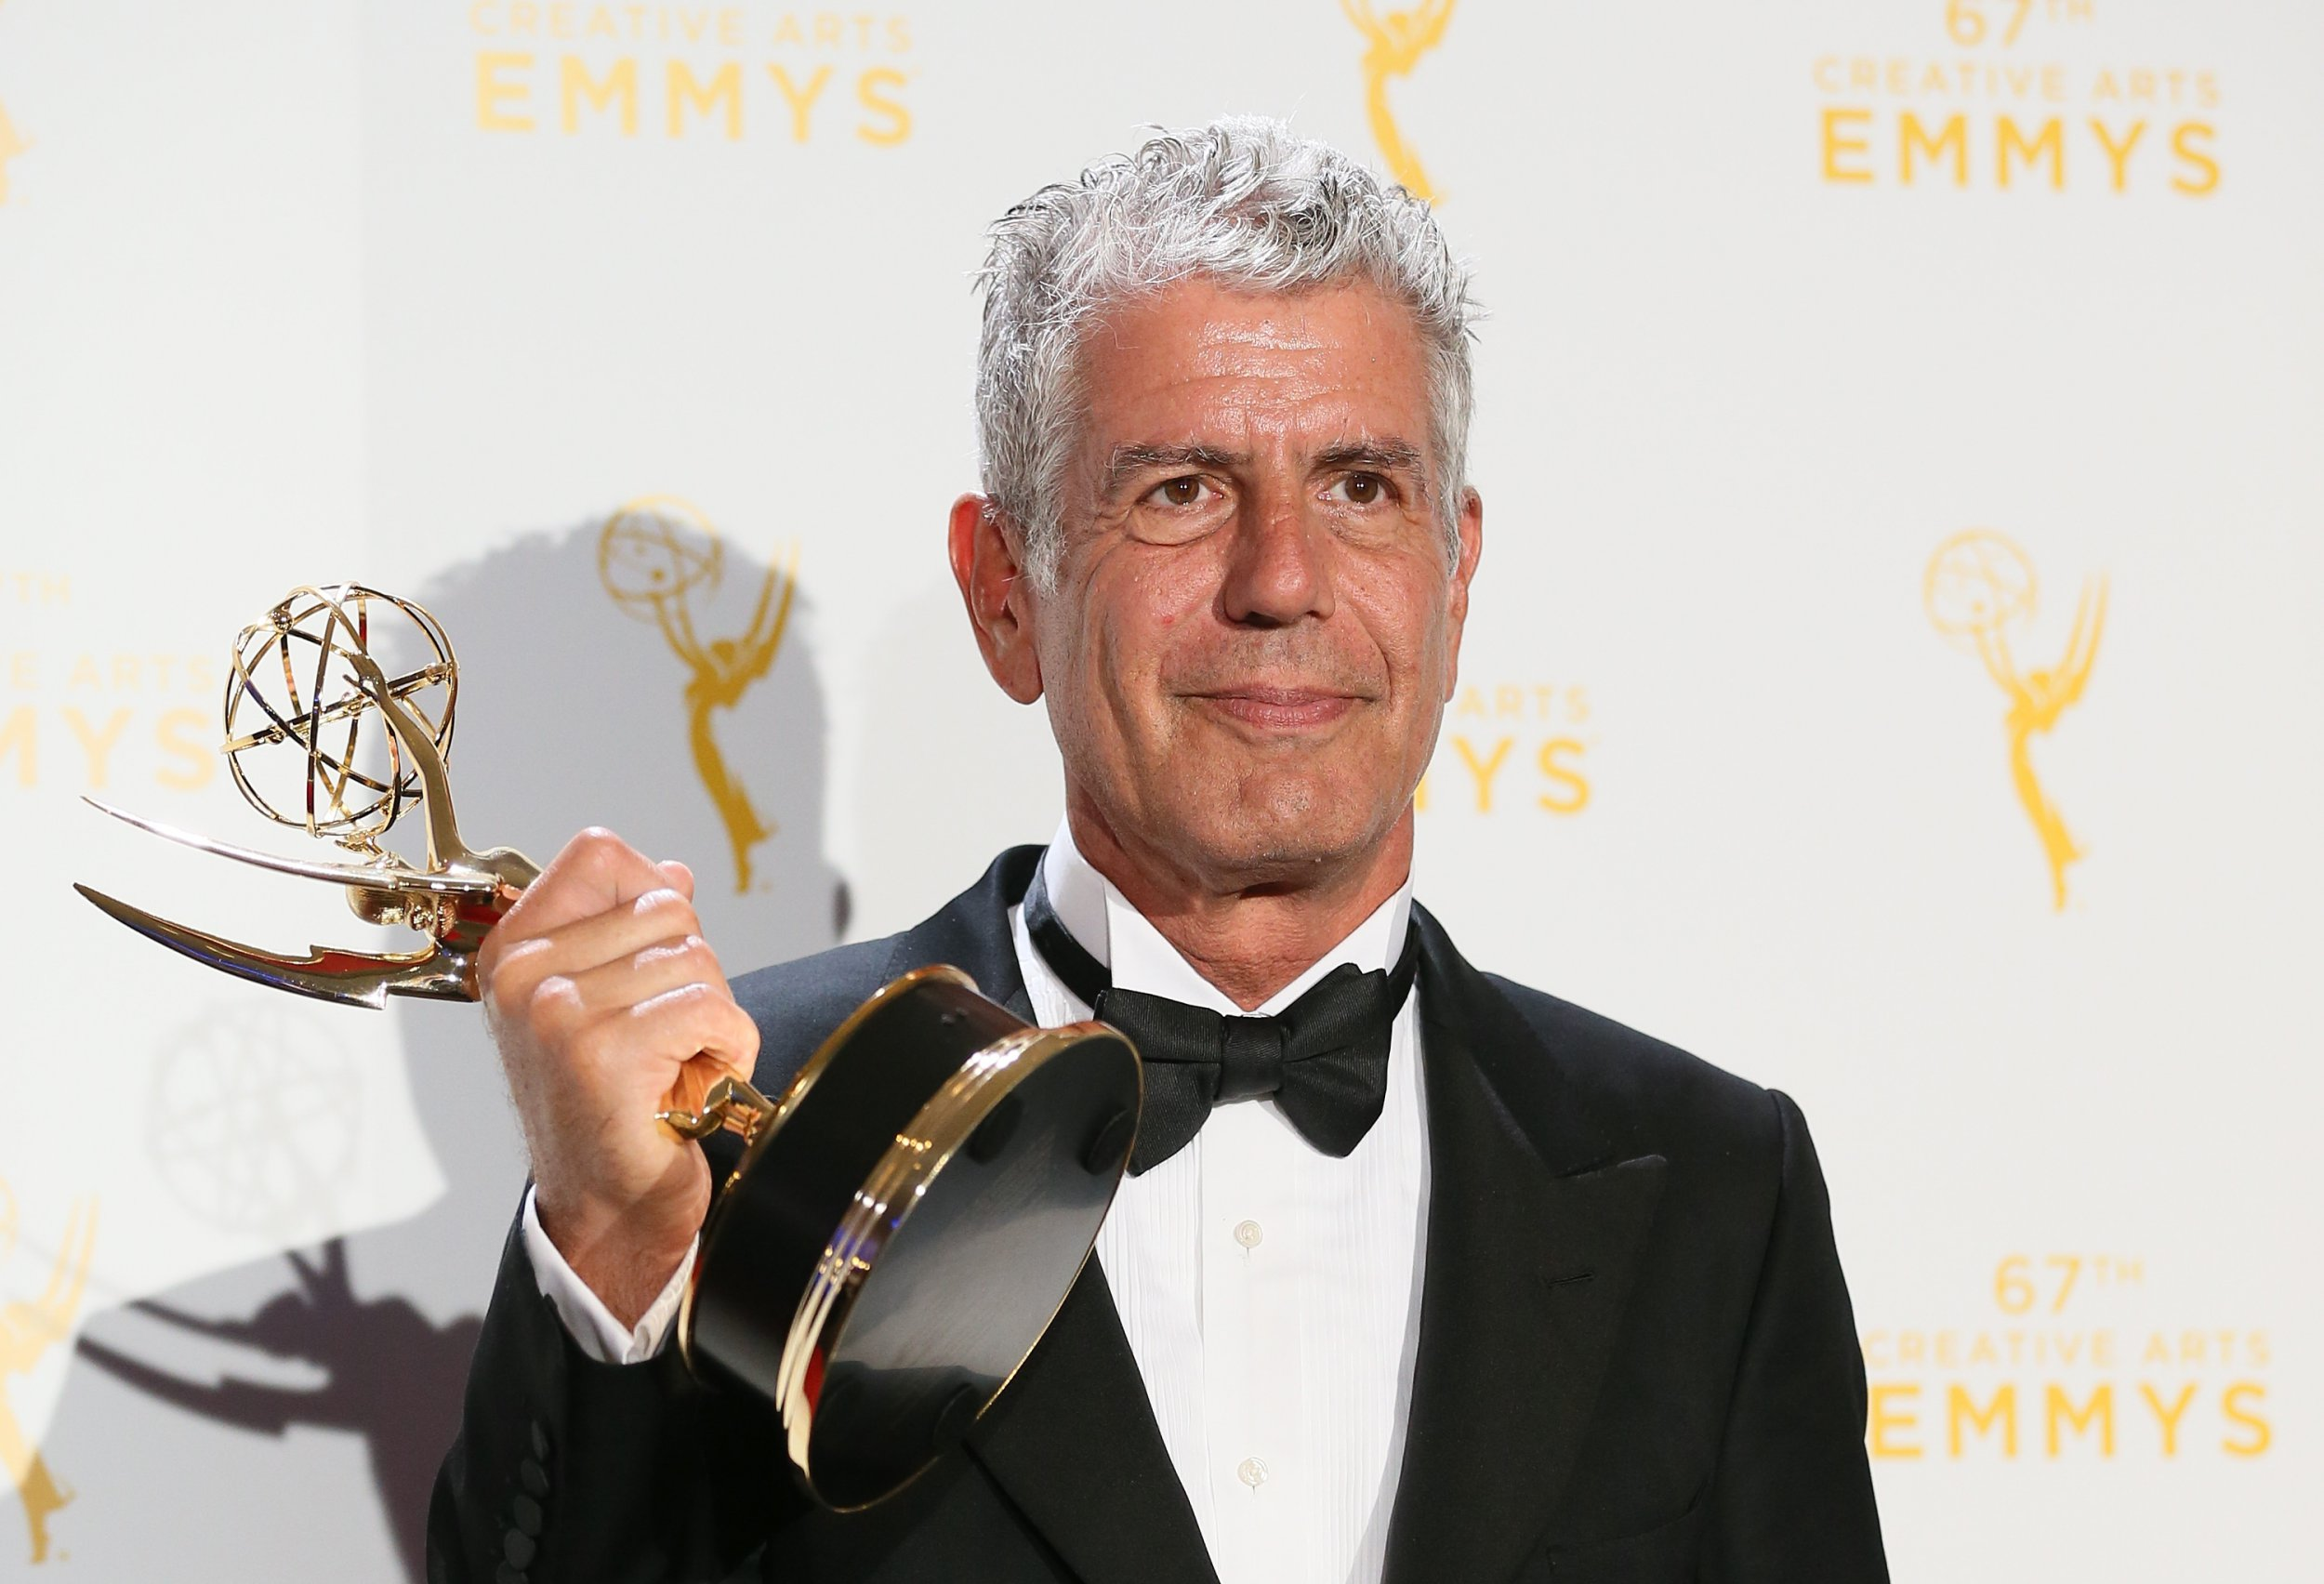 LOS ANGELES, CA - SEPTEMBER 12: Anthony Bourdain poses in the press room during the 2015 Creative Arts Emmy Awards at Microsoft Theater on September 12, 2015 in Los Angeles, California. (Photo by JB Lacroix/WireImage)